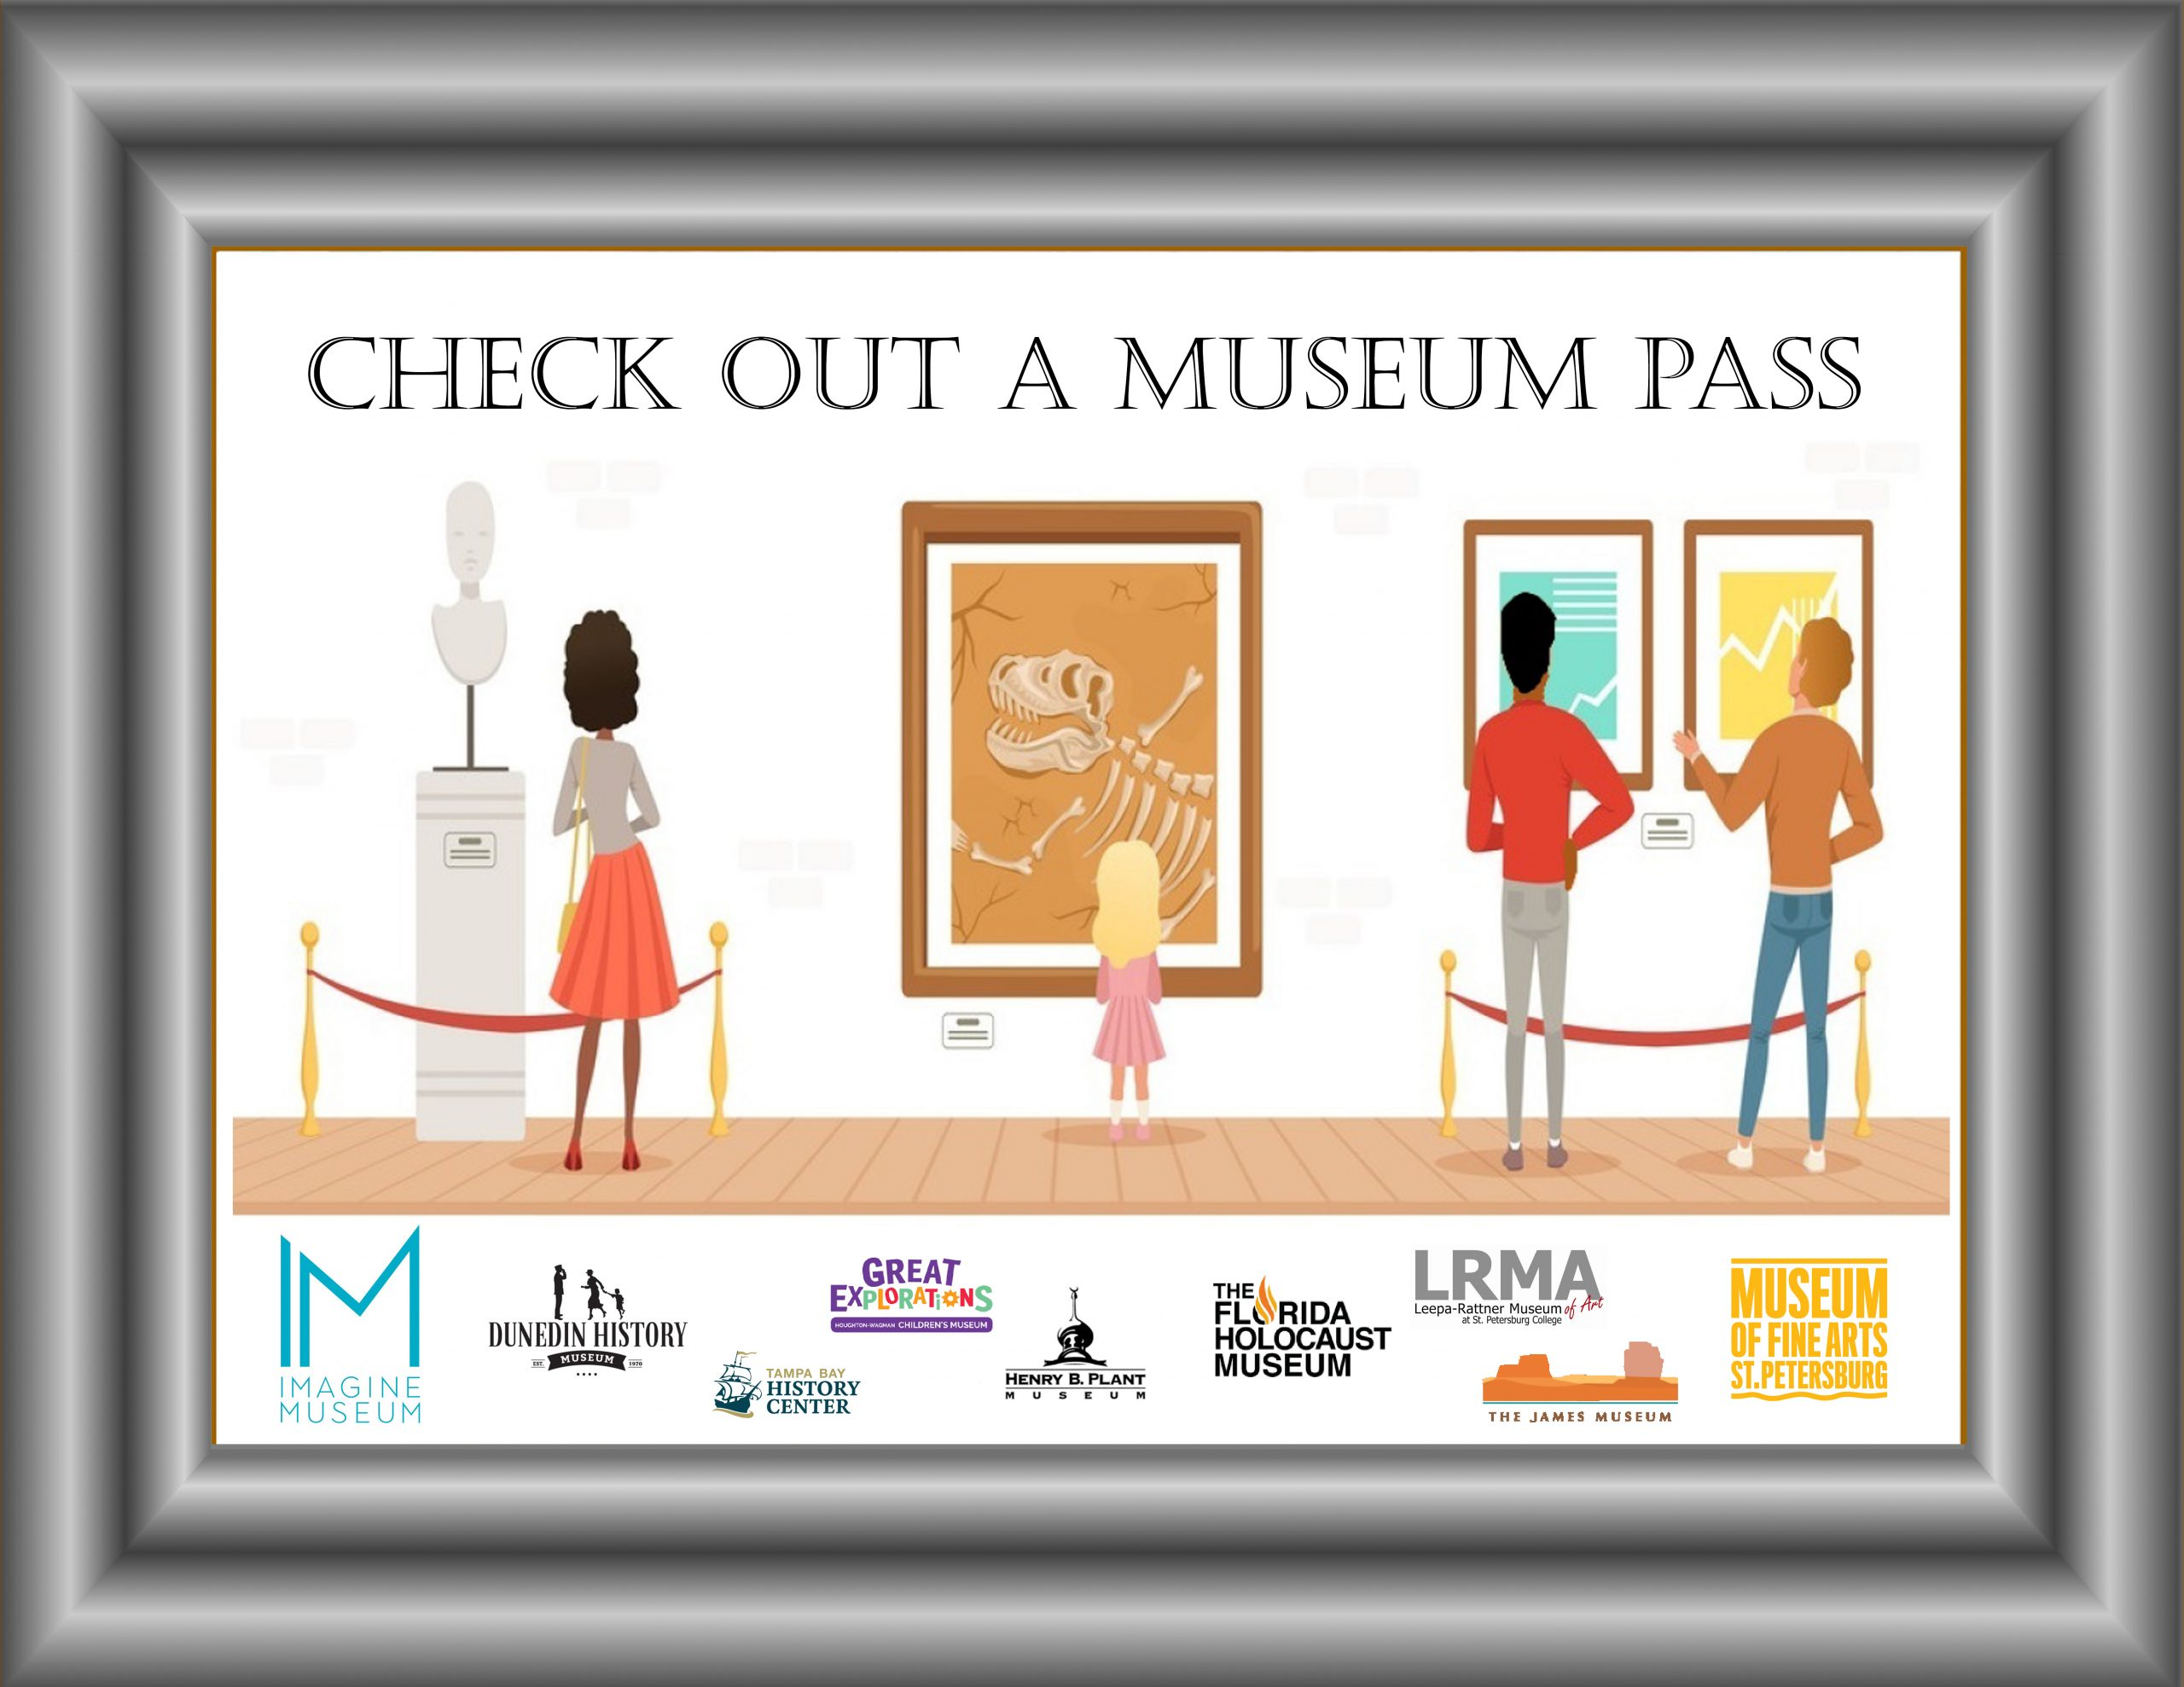 Check Out a Museum Pass with participating museum logos